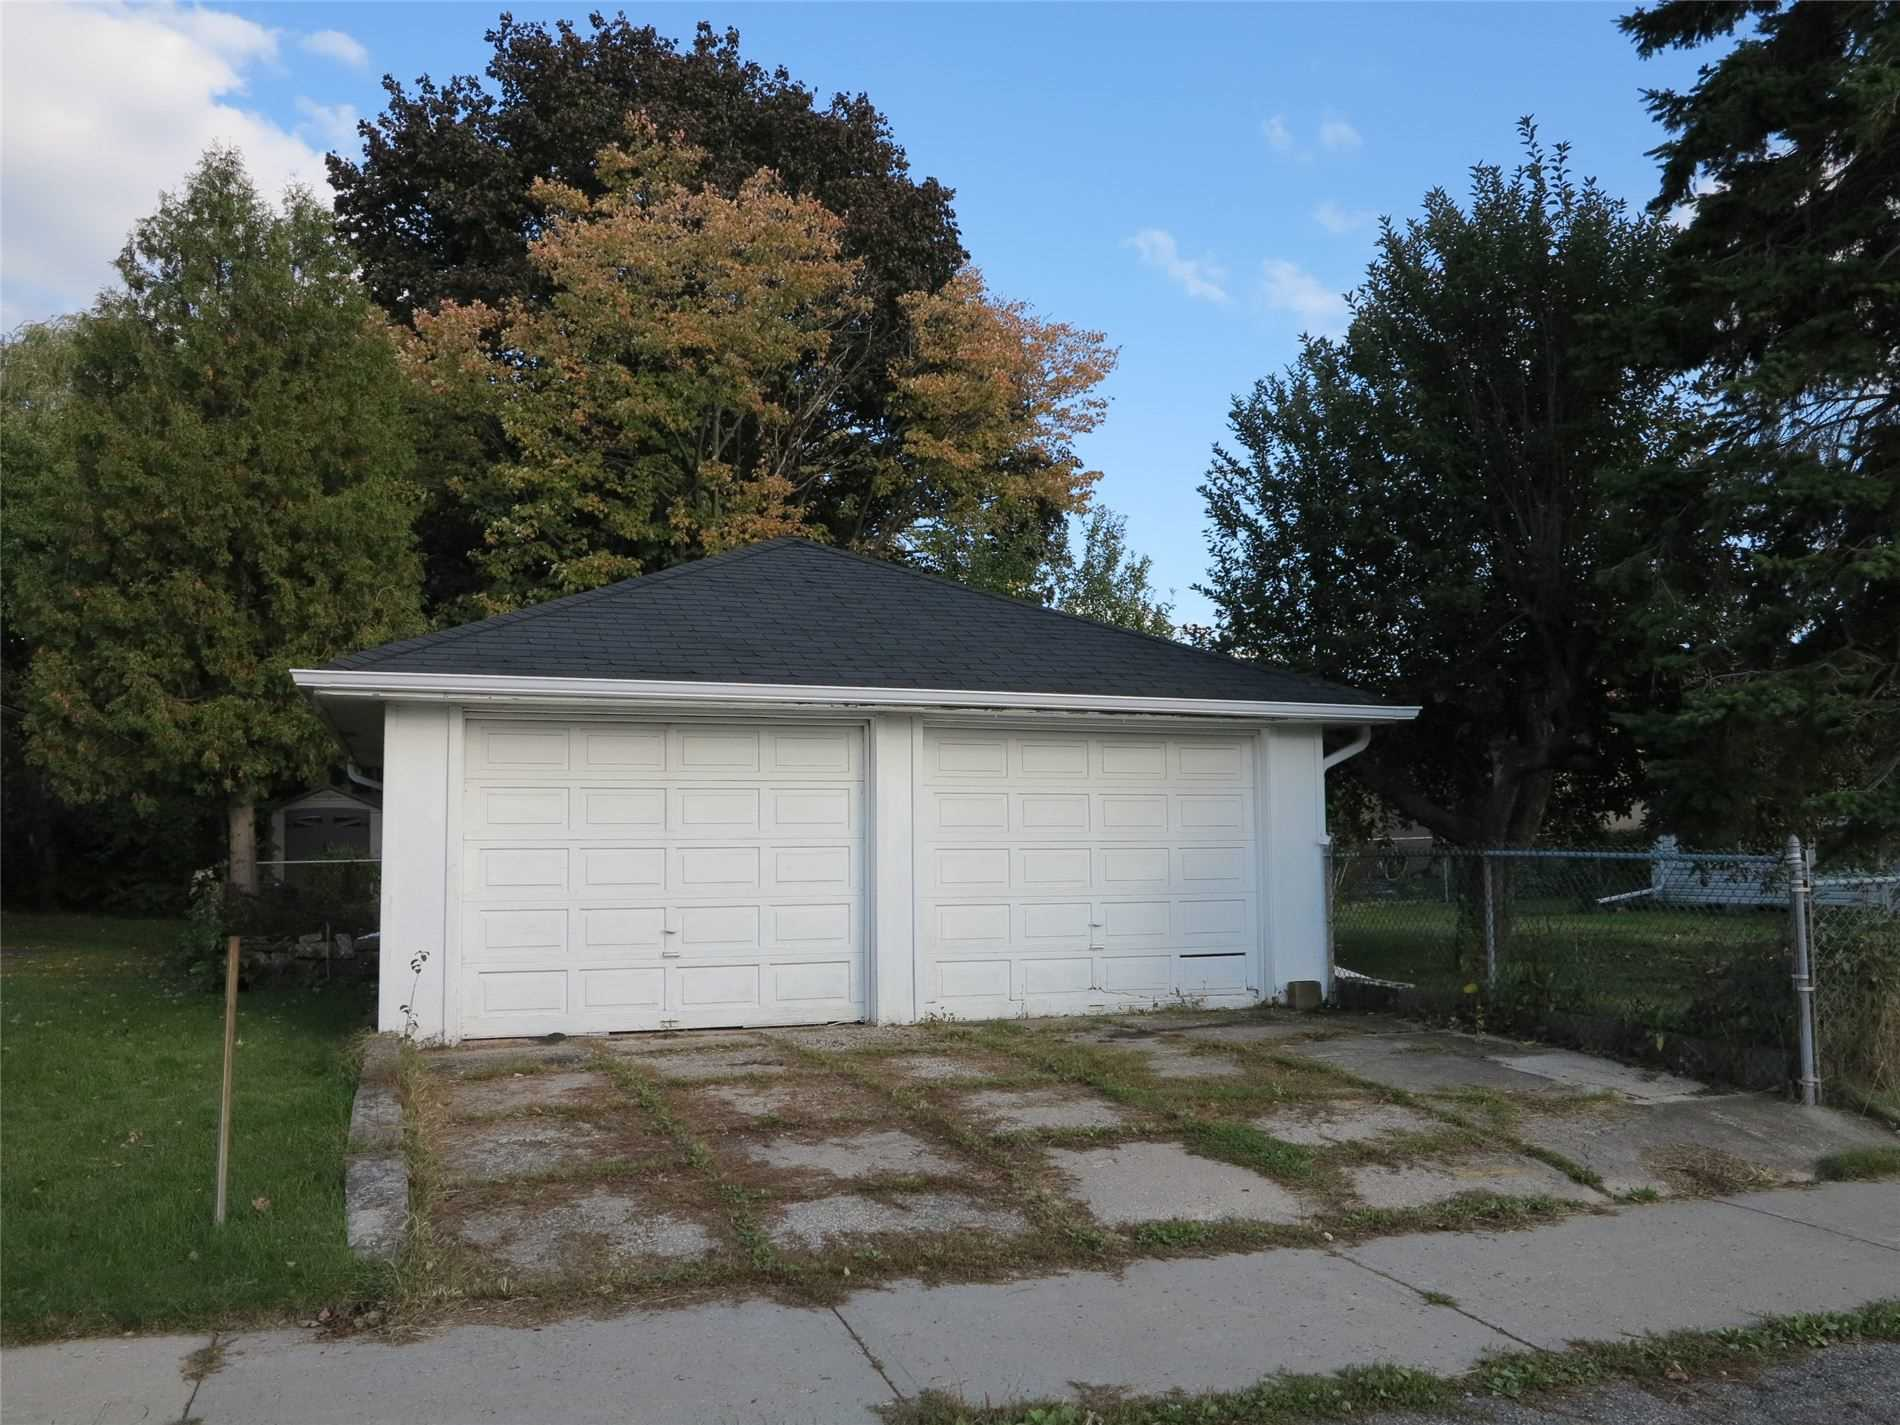 Image 13 of 30 showing inside of 3 Bedroom Detached Bungalow for Lease at 456 Drewry Ave, Toronto M2R2K7